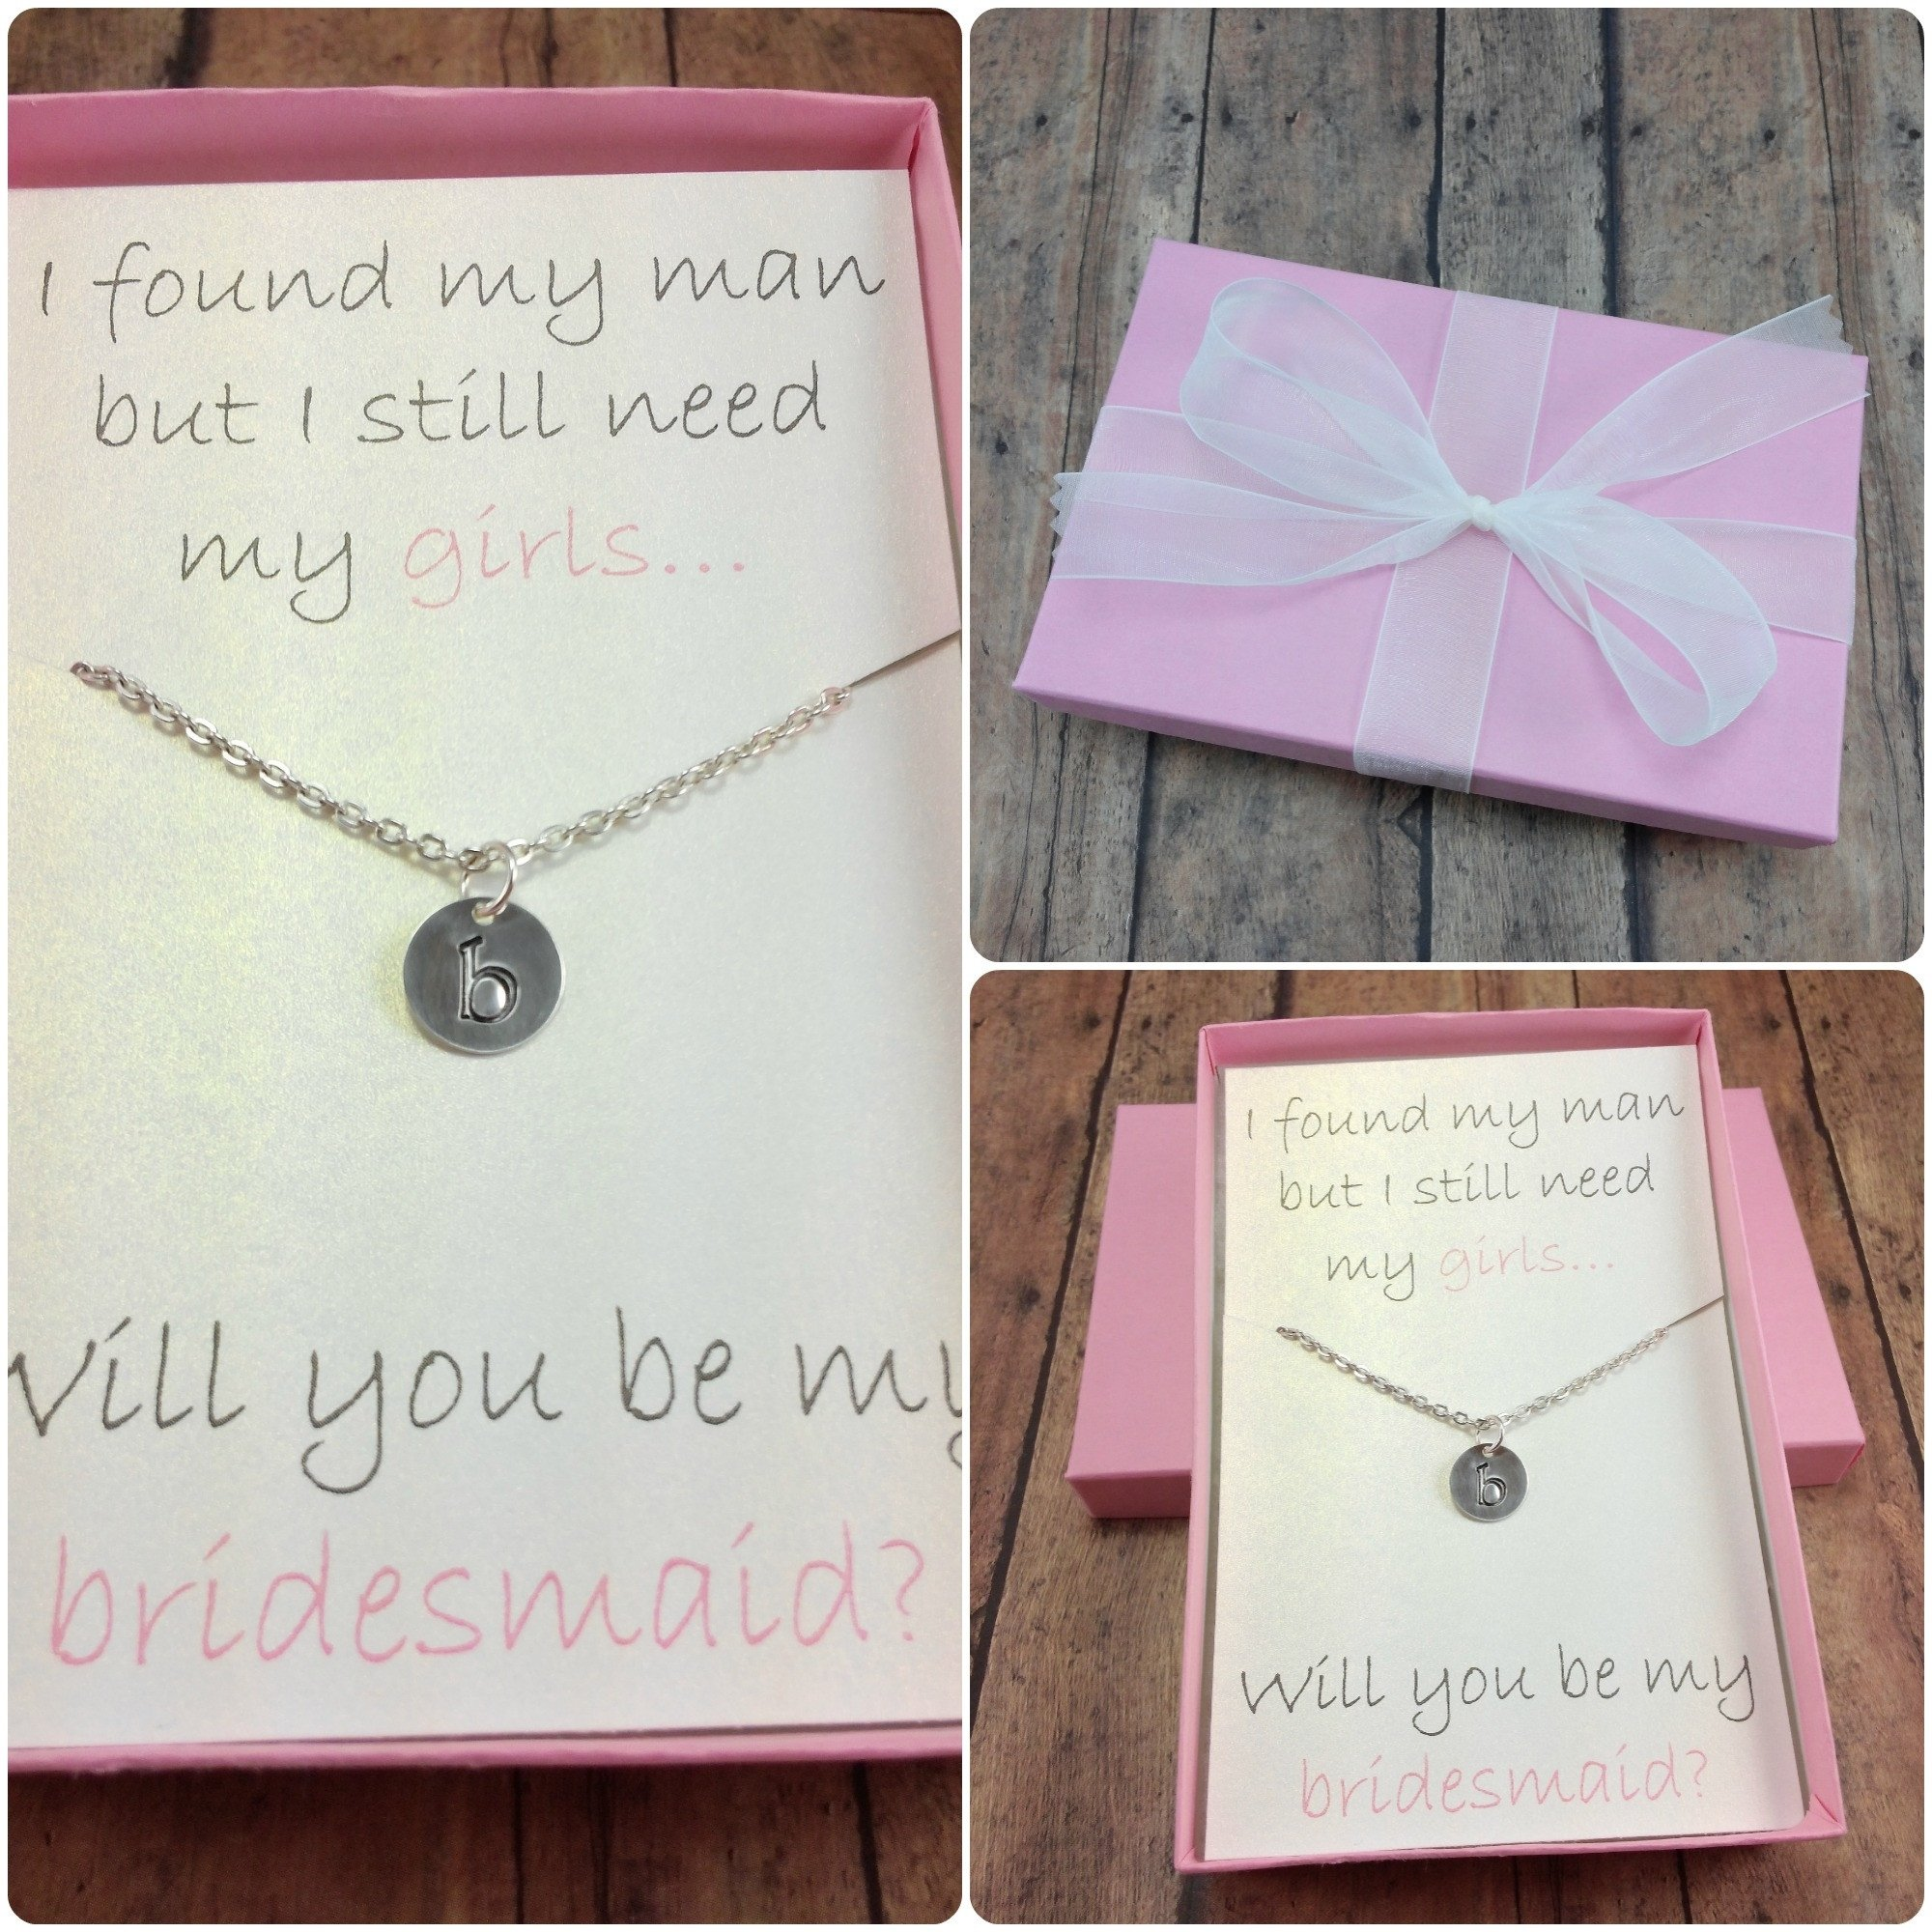 10 Cute How To Ask Bridesmaids Ideas beautiful ways to ask bridesmaids to be in your wedding gallery 2020